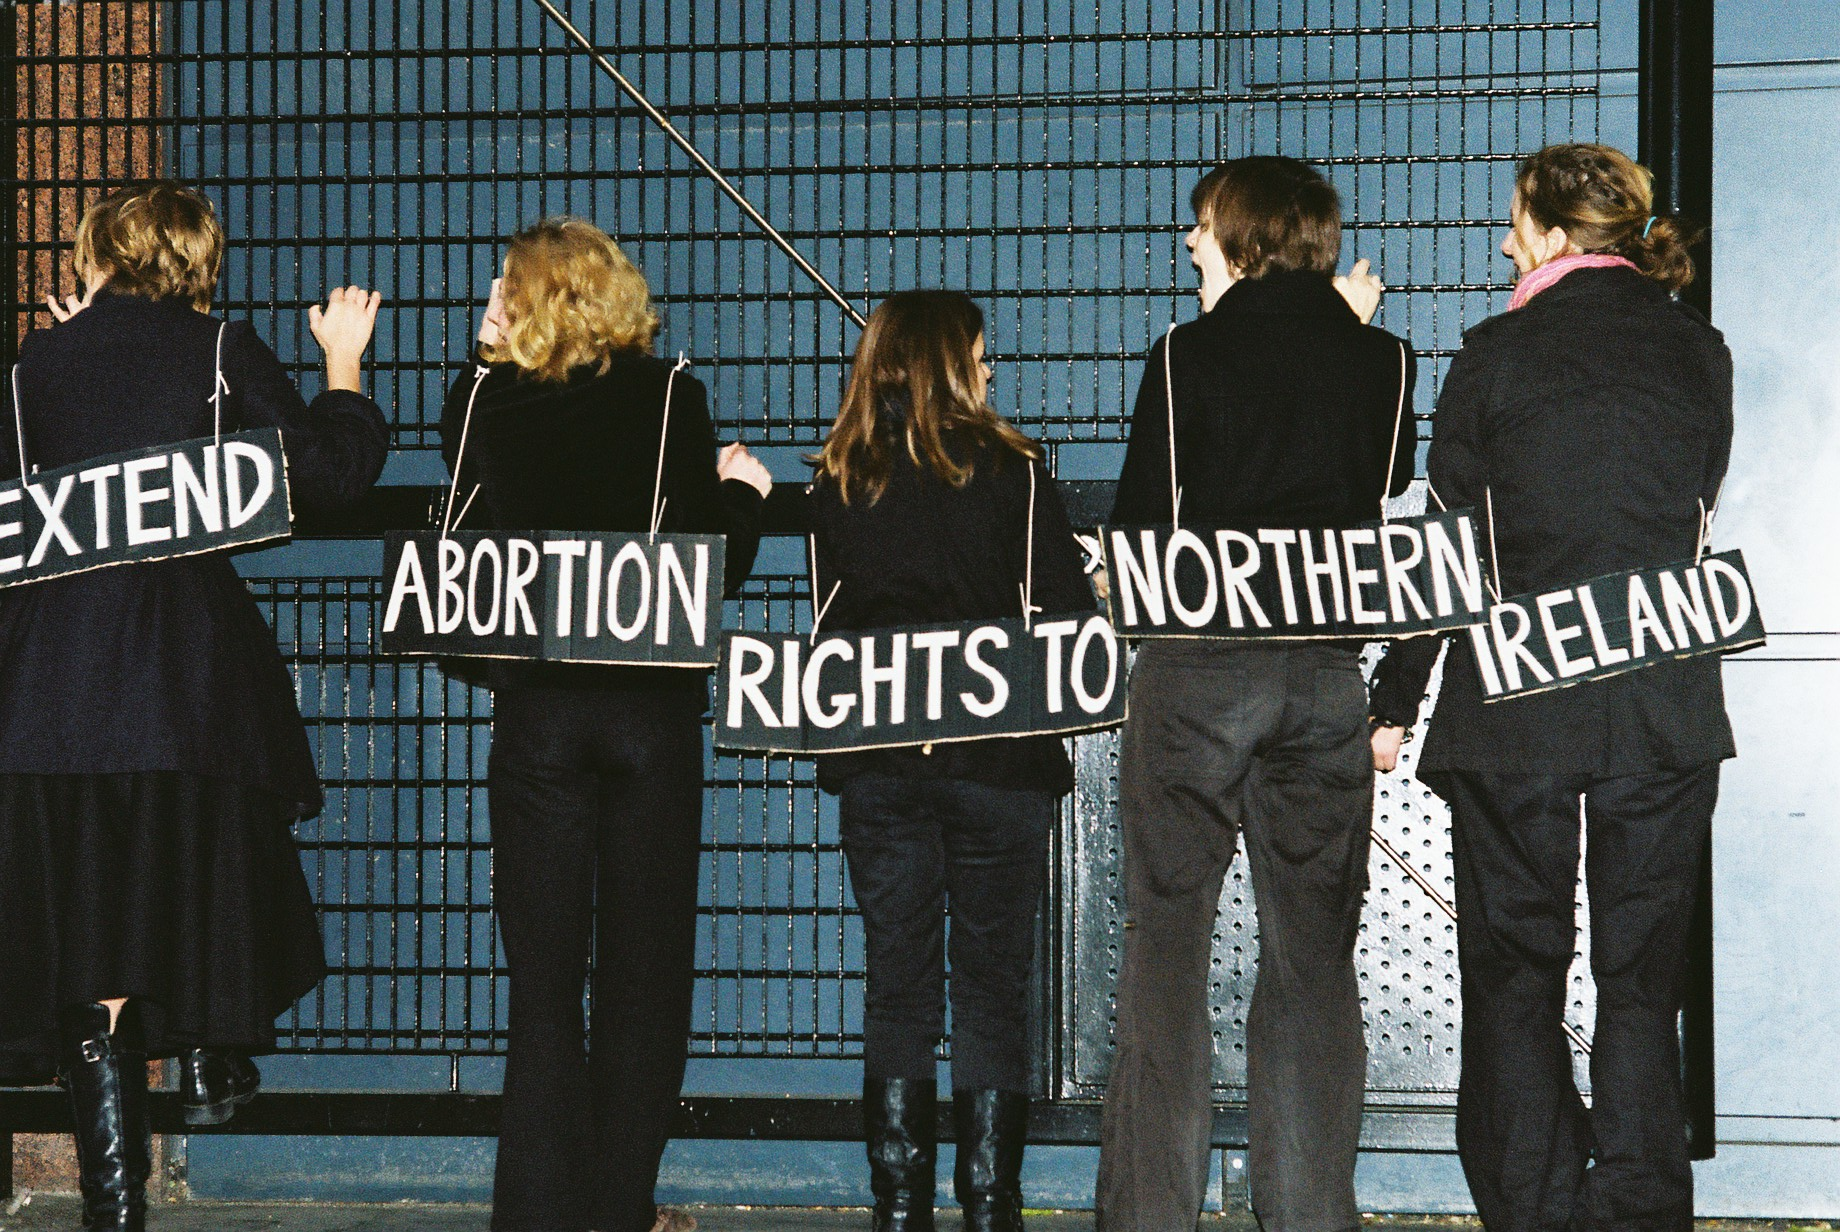 Demonstrators chaining themselves to Department of Health to ensure extension of Abortion Rights to Northern Ireland (feministfightback.org.uk)